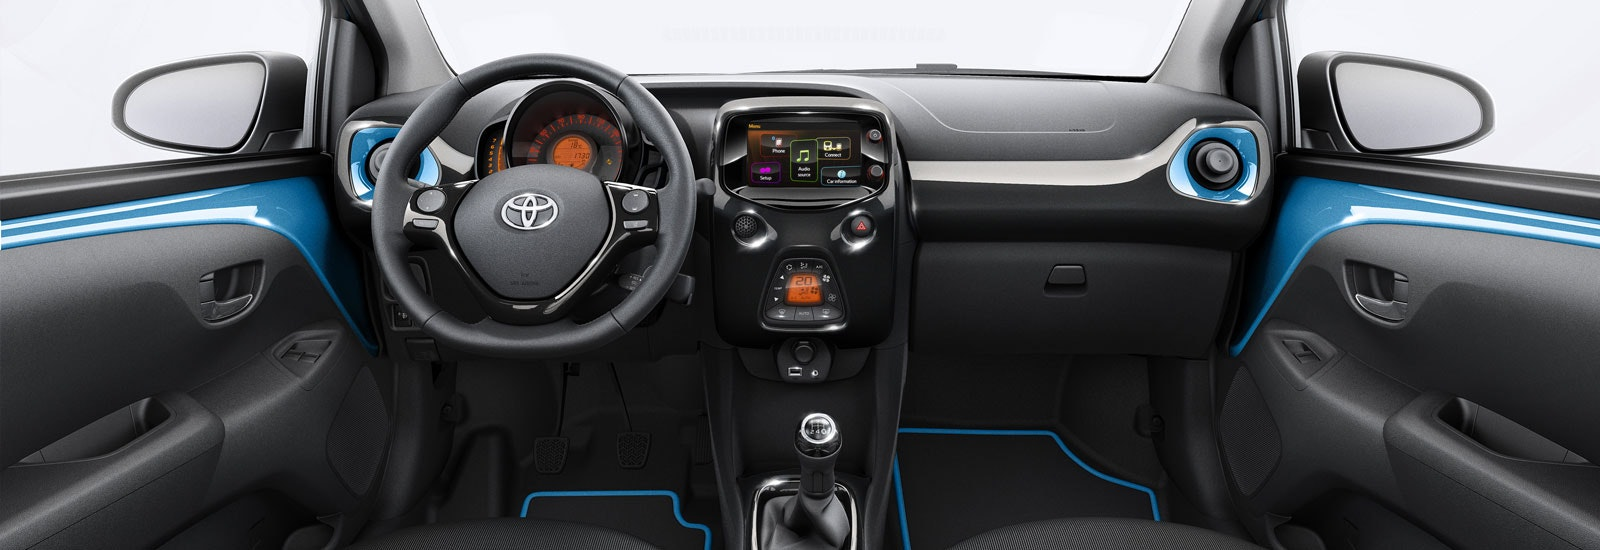 Toyota Aygo Interior Wiring Diagram Facelift Price Specs And Release Date Carwow Rh Co Uk Dimensions Parts